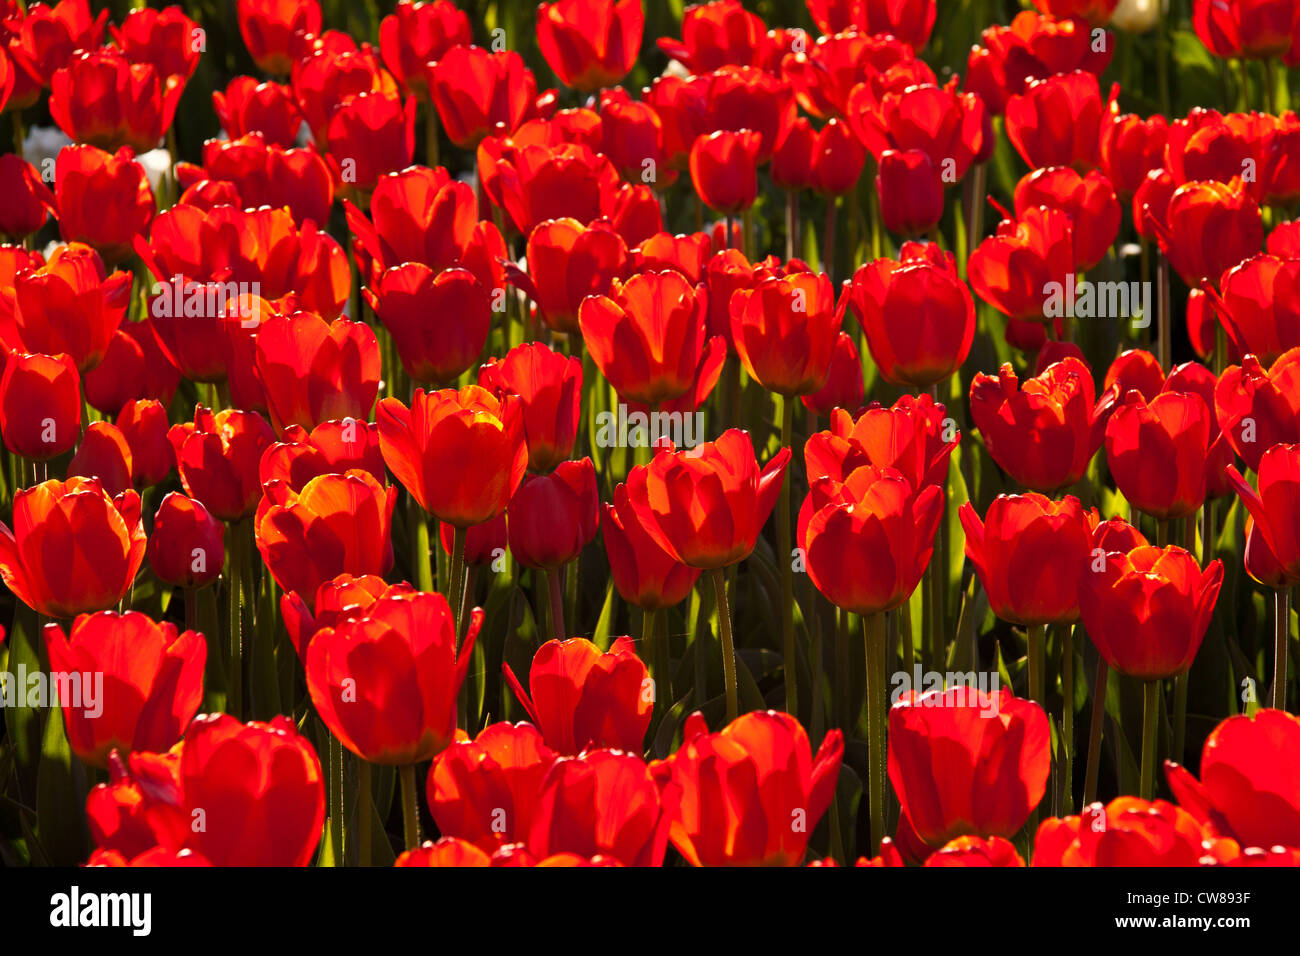 Red tulips background in contre jour like background Stock Photo